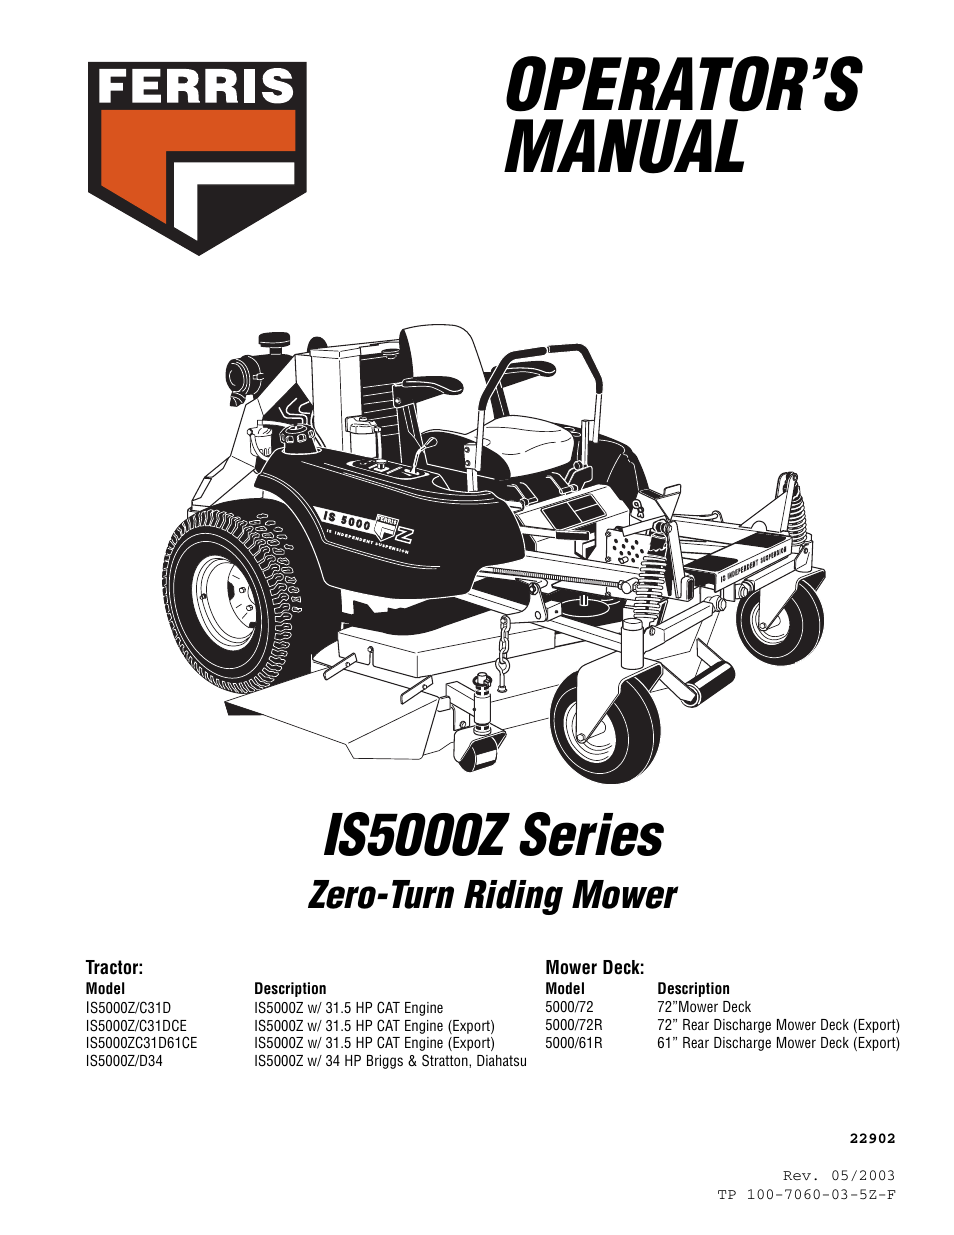 ferris industries 5000 72r user manual 55 pages also. Black Bedroom Furniture Sets. Home Design Ideas